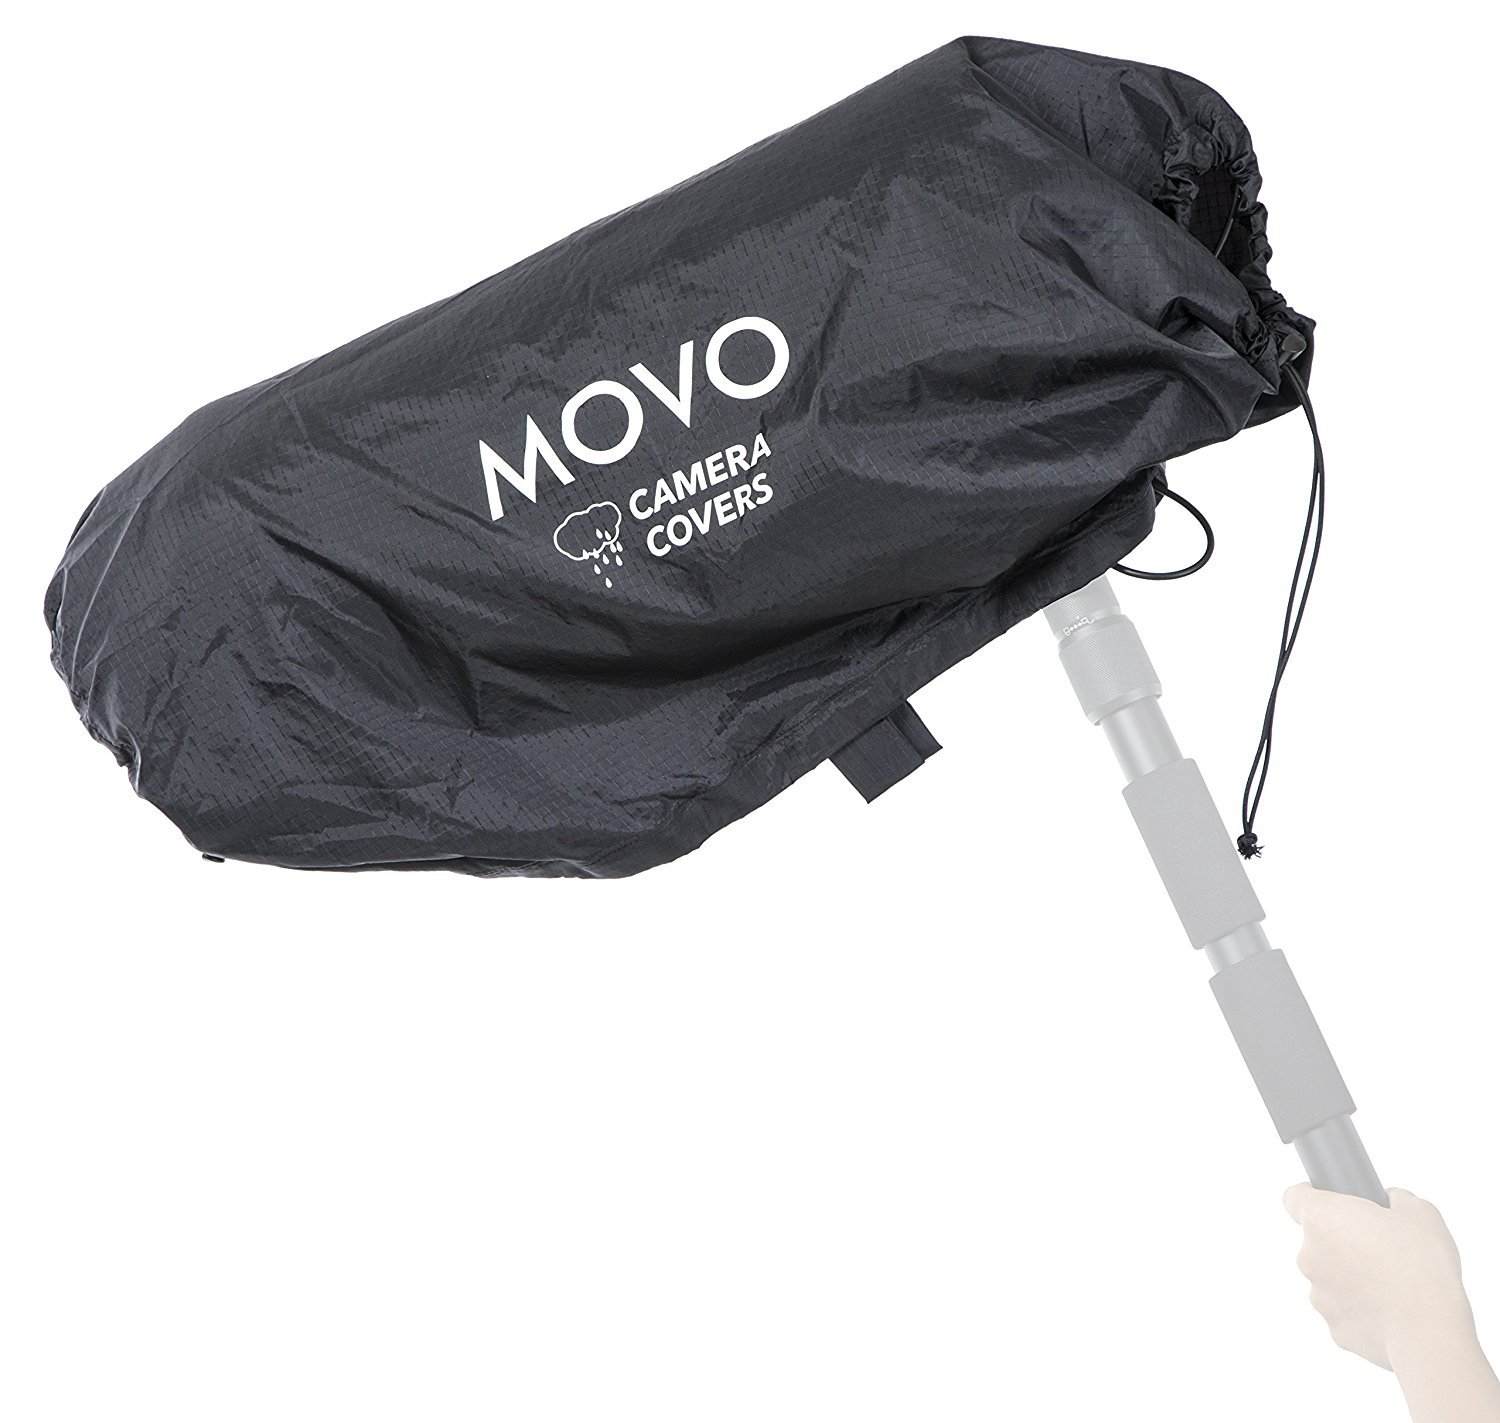 Movo CRC31 Storm Raincover Protector for DSLR Cameras, Lenses, Photographic Equipment (XL Size: 31 x 14.5) by Movo